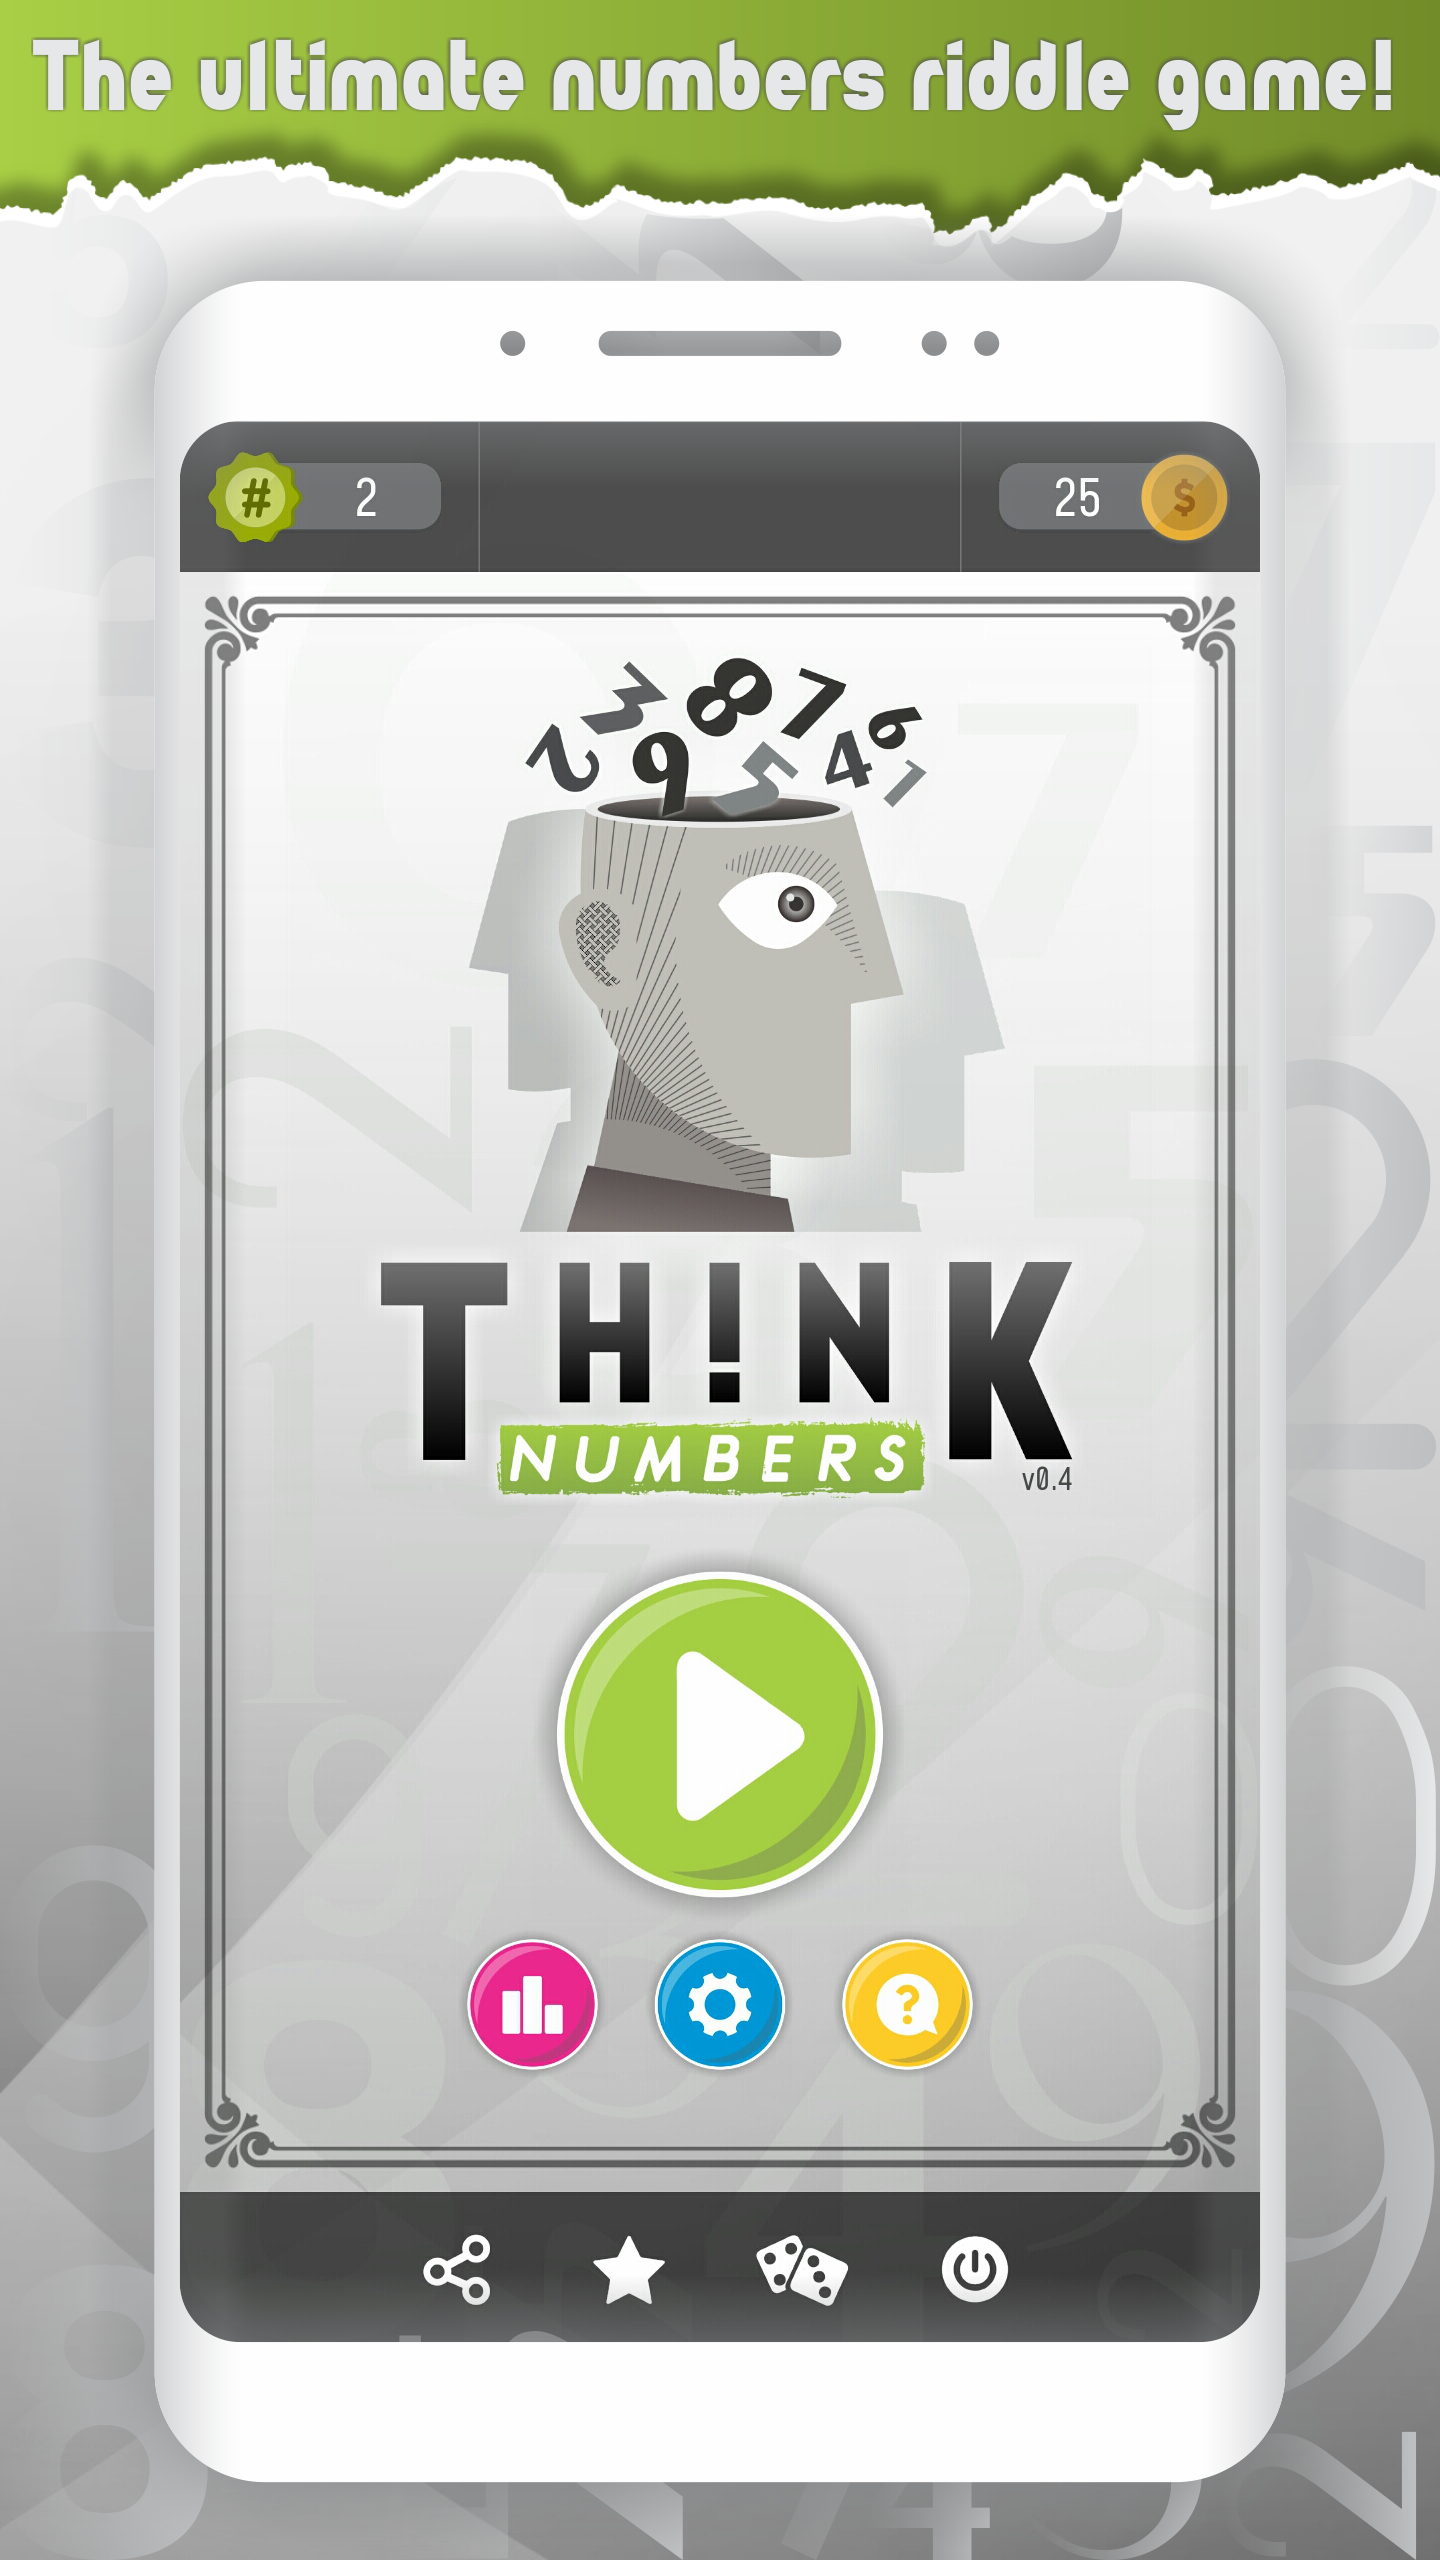 Think Numbers - Ditloid word riddle quiz